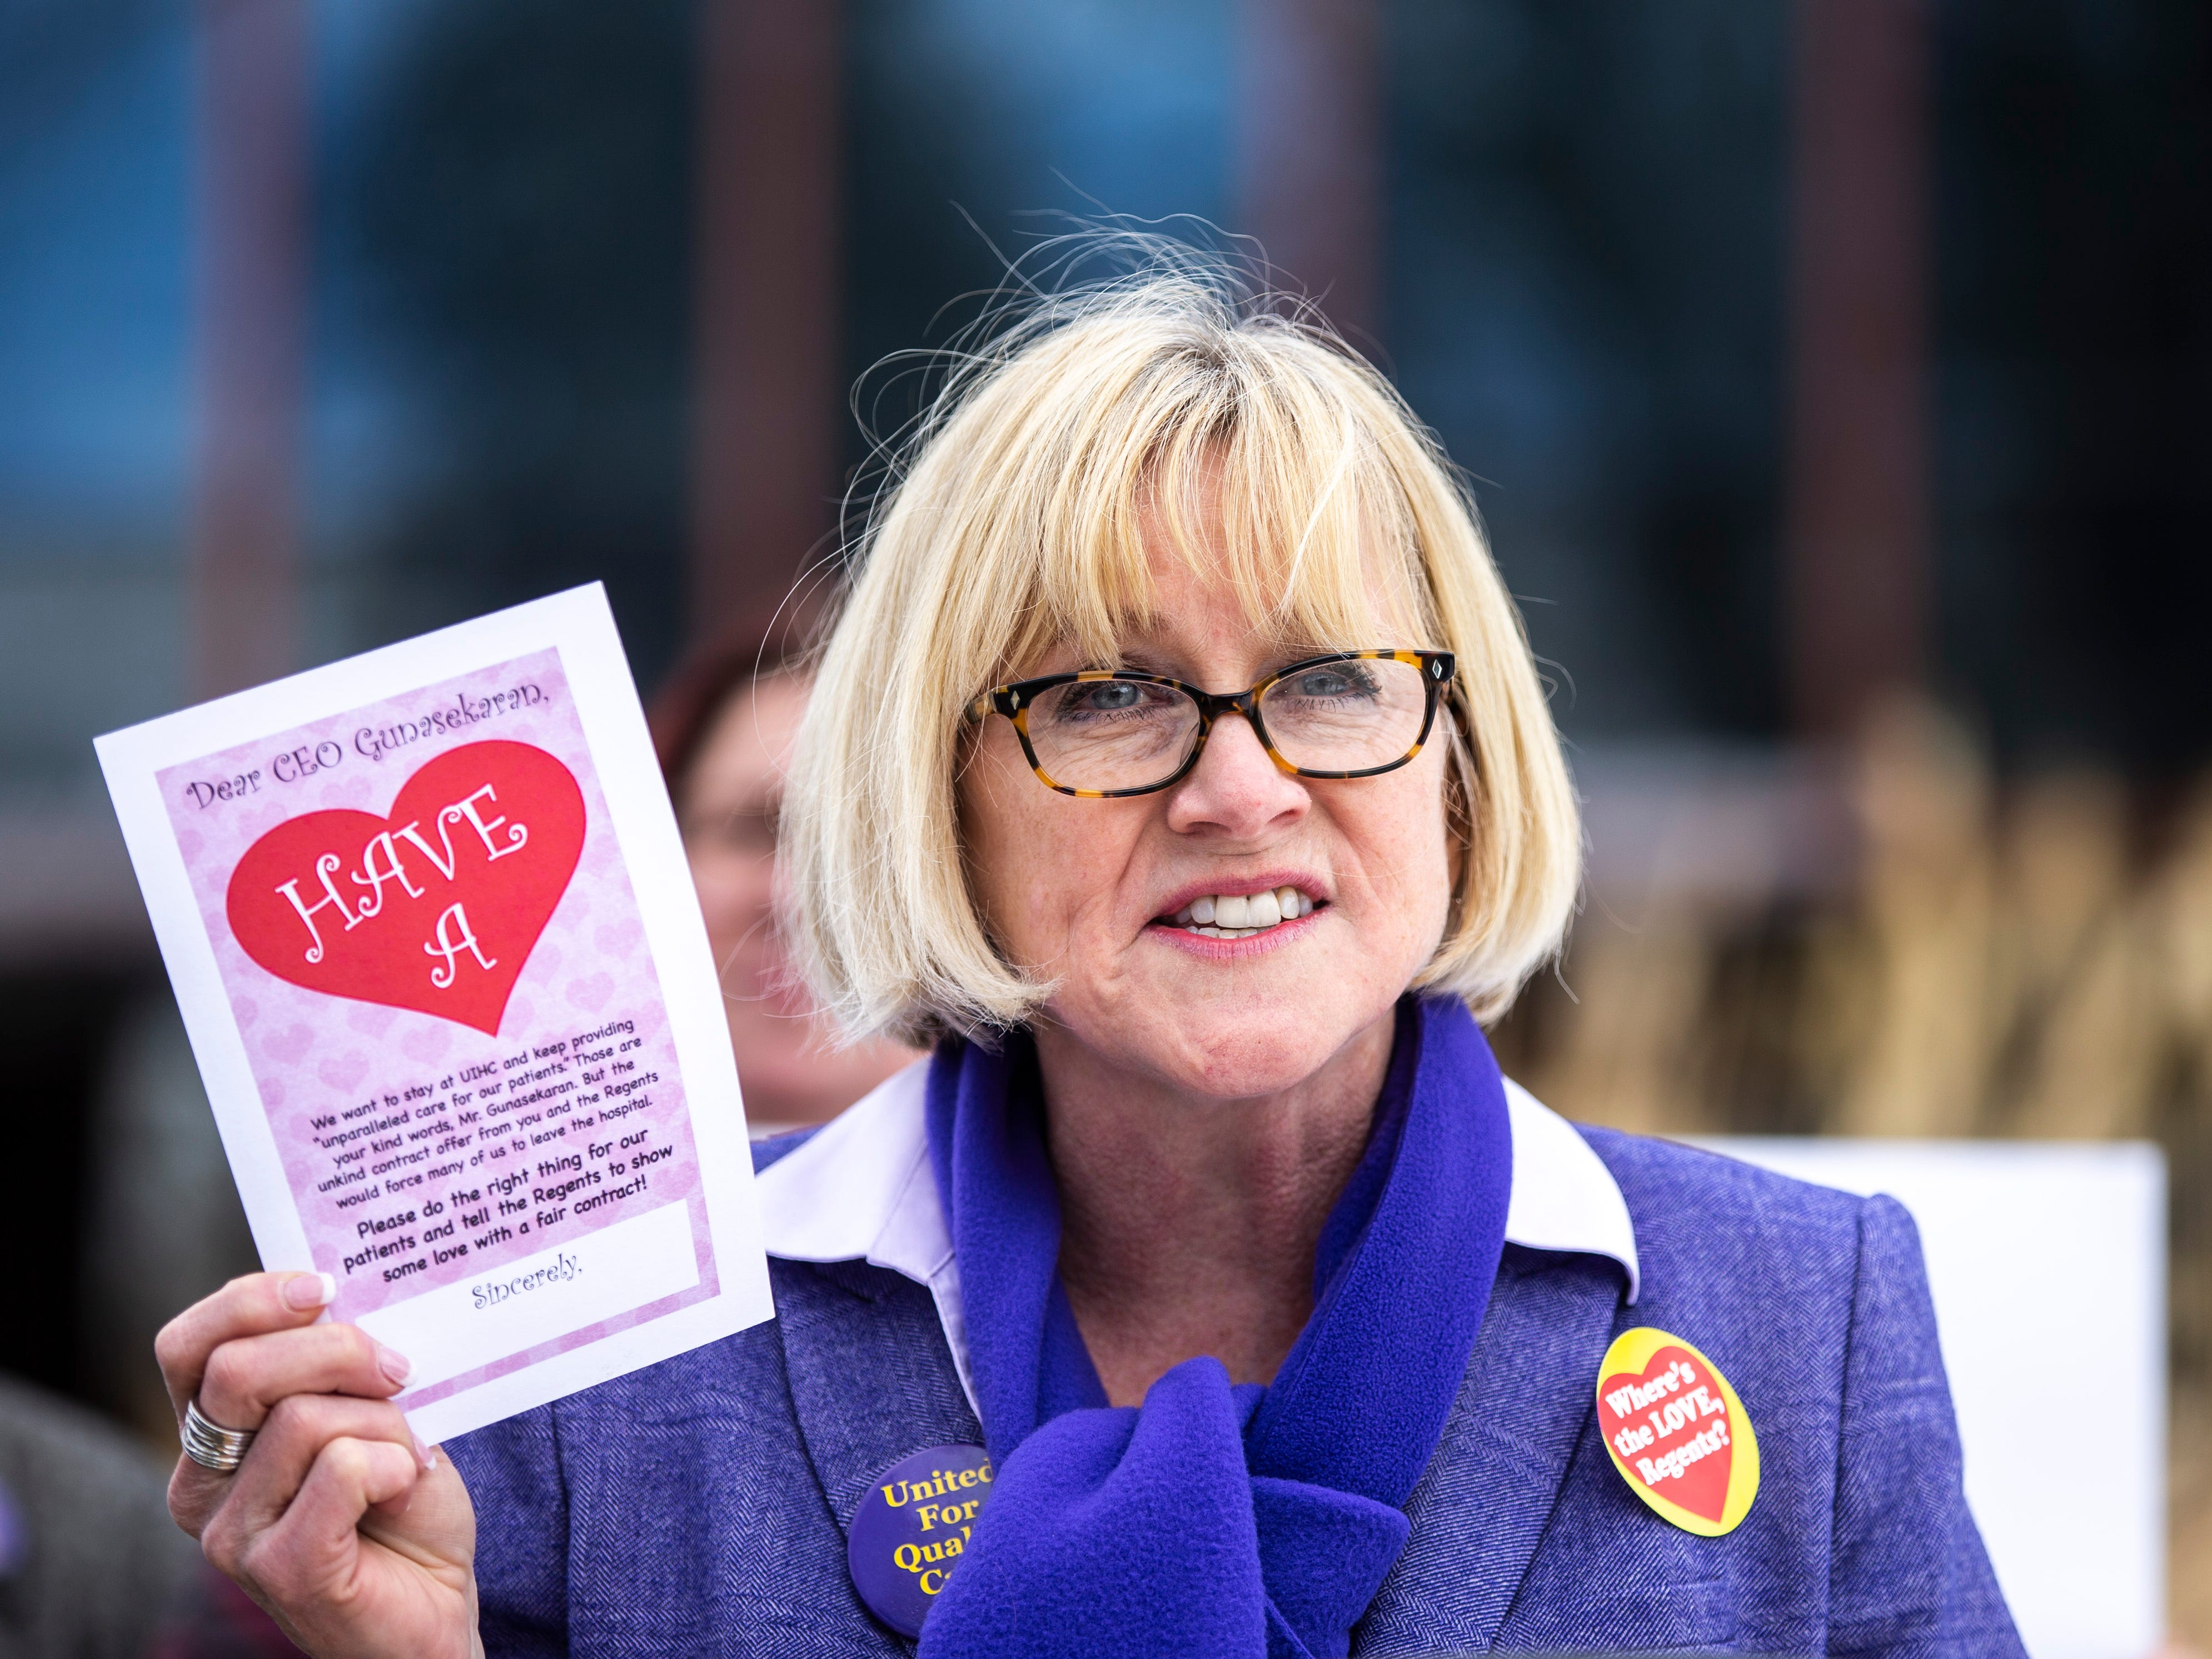 Cathy Glasson, SEIU Local 199 president, holds up a card while speaking at a press conference with members of the UIHC union during a Valentine's Day protest over bargaining with the hospital CEO and Regents, Thursday, Feb. 14, 2019 at the University of Iowa Hospitals and Clinics in Iowa City, Iowa.